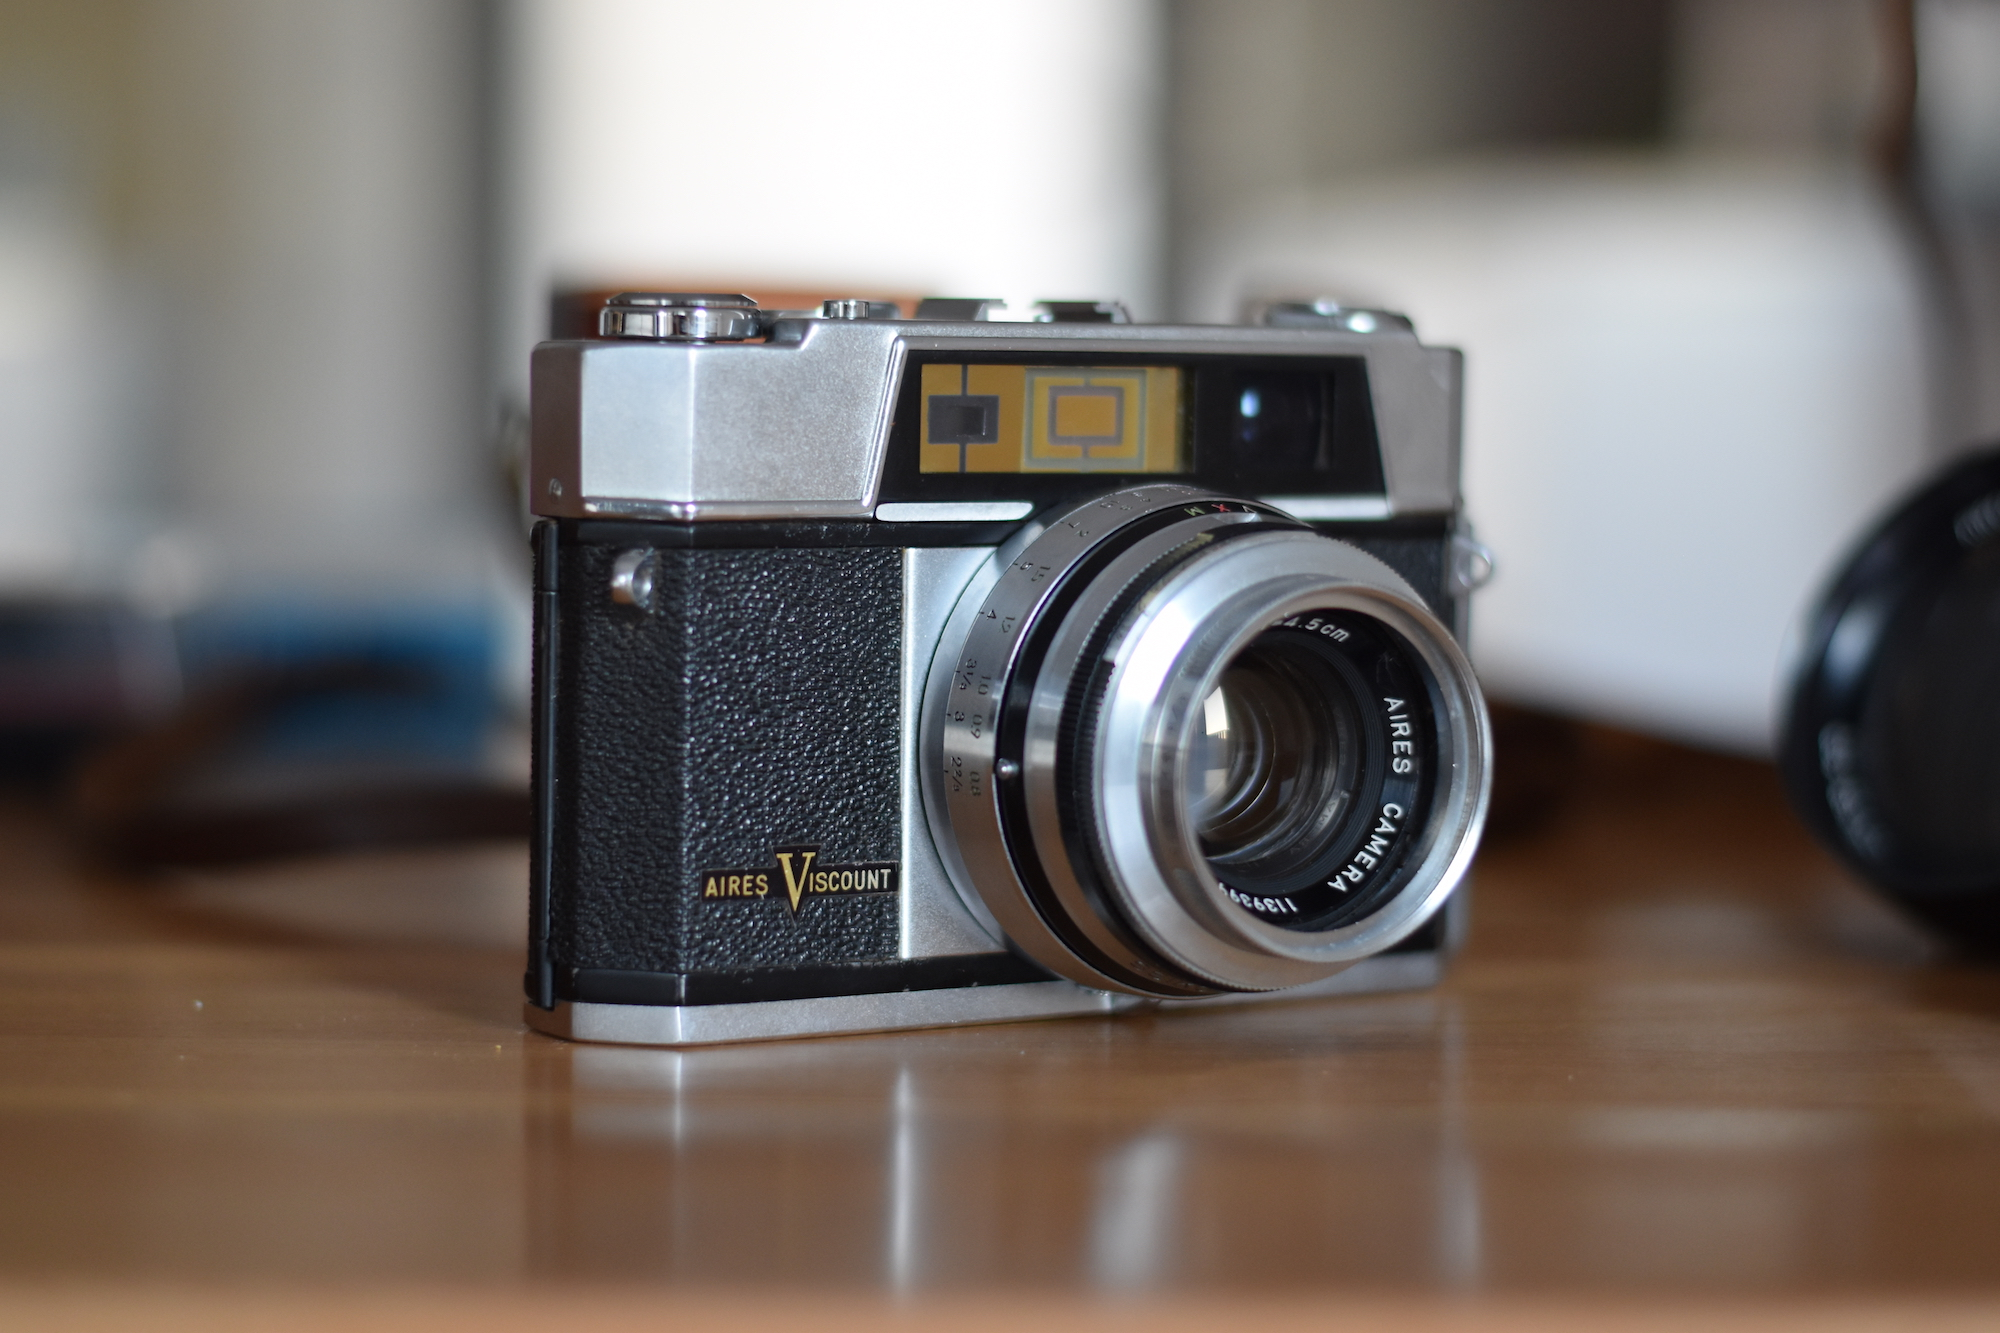 An Aires Viscount rangefinder camera. The base is silvery, the body black leatheret and the top is silvery.